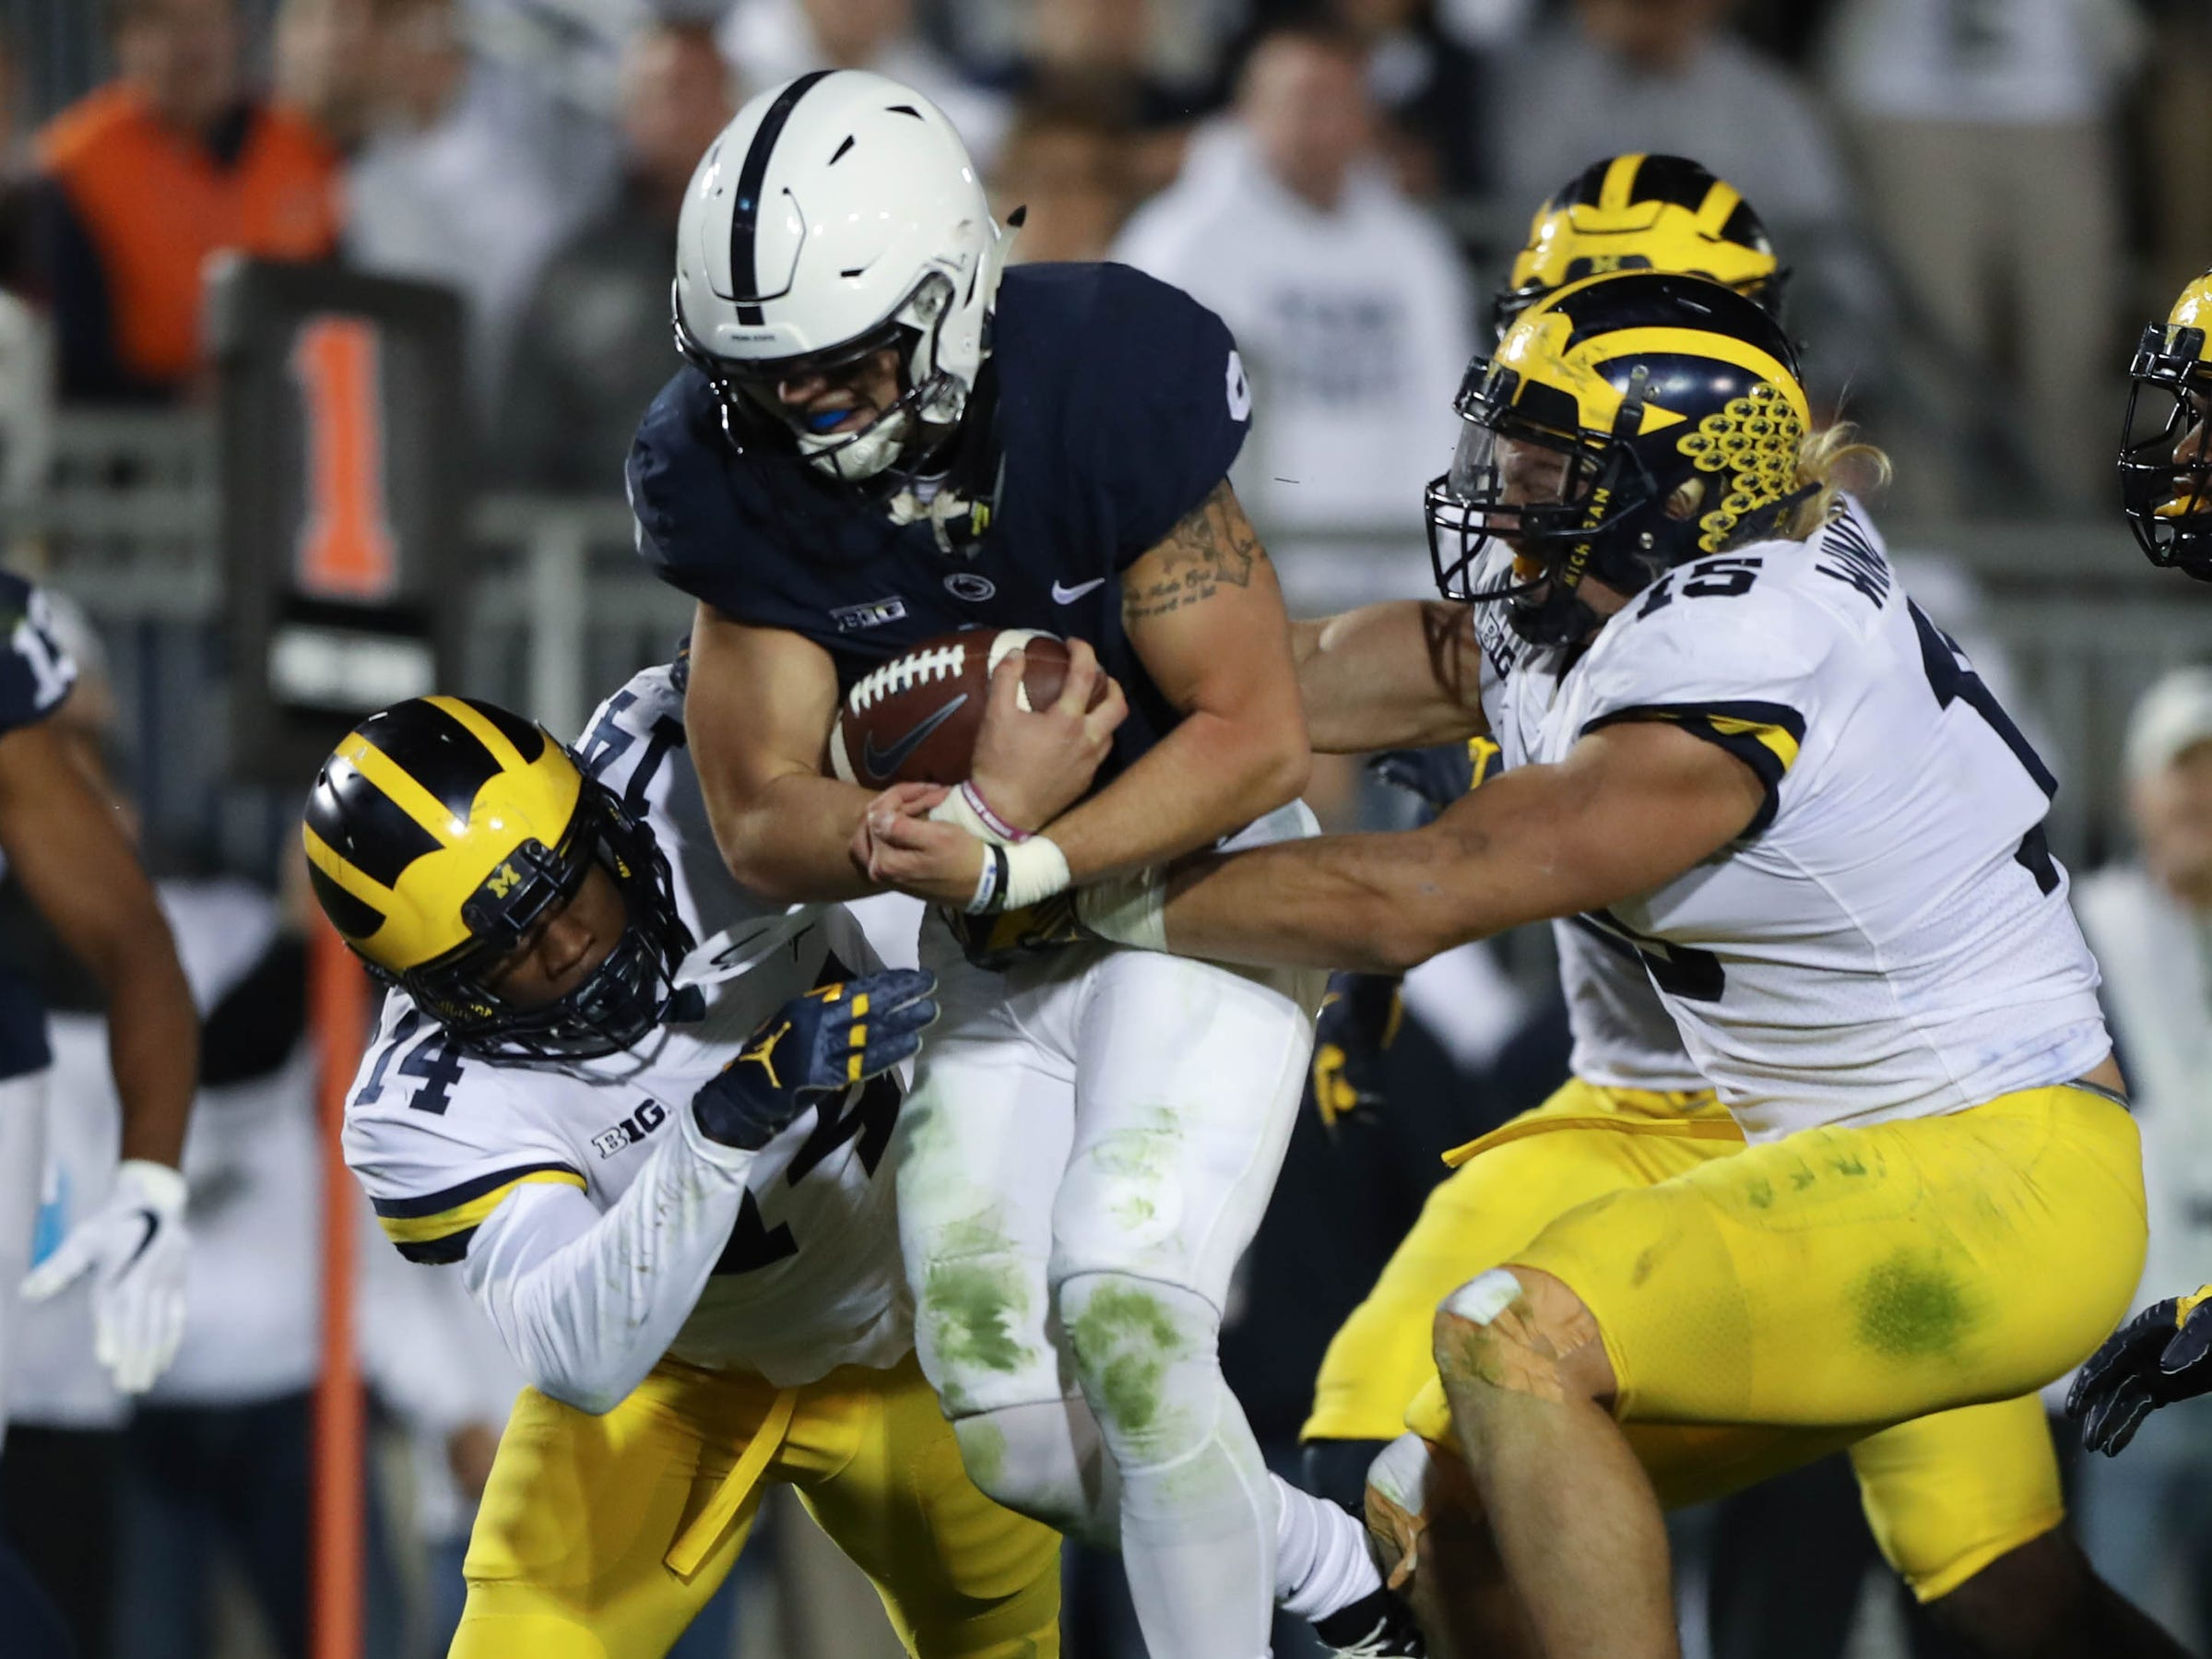 4. Penn State at Michigan. When: Nov. 3. Where: Ann Arbor. The buzz: The Wolverines will be looking for revenge against the Nittany Lions, who stomped them last year, 42-13. Lucky for them Saquan Barkley is now in the NFL.